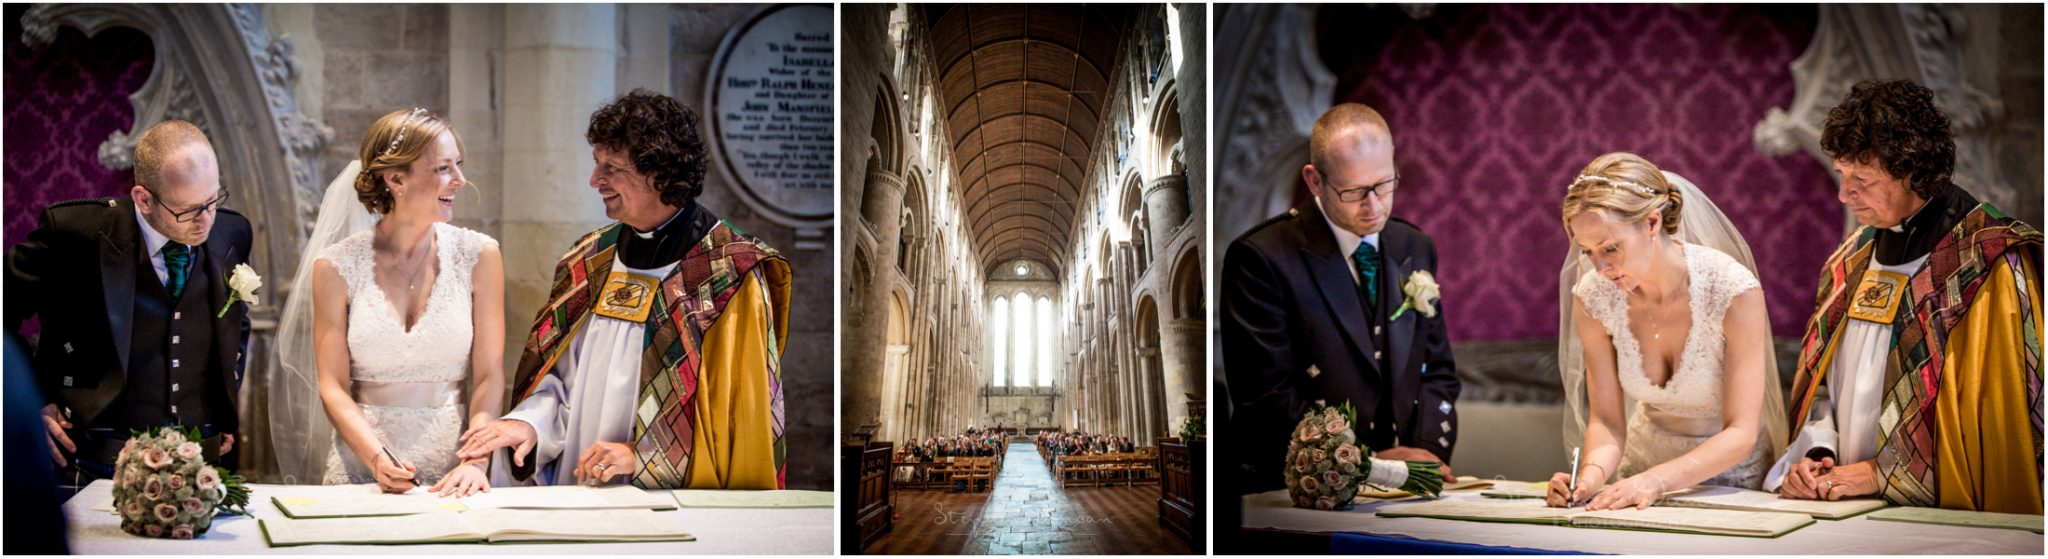 Romsey Abbey wedding photographer signing of the register